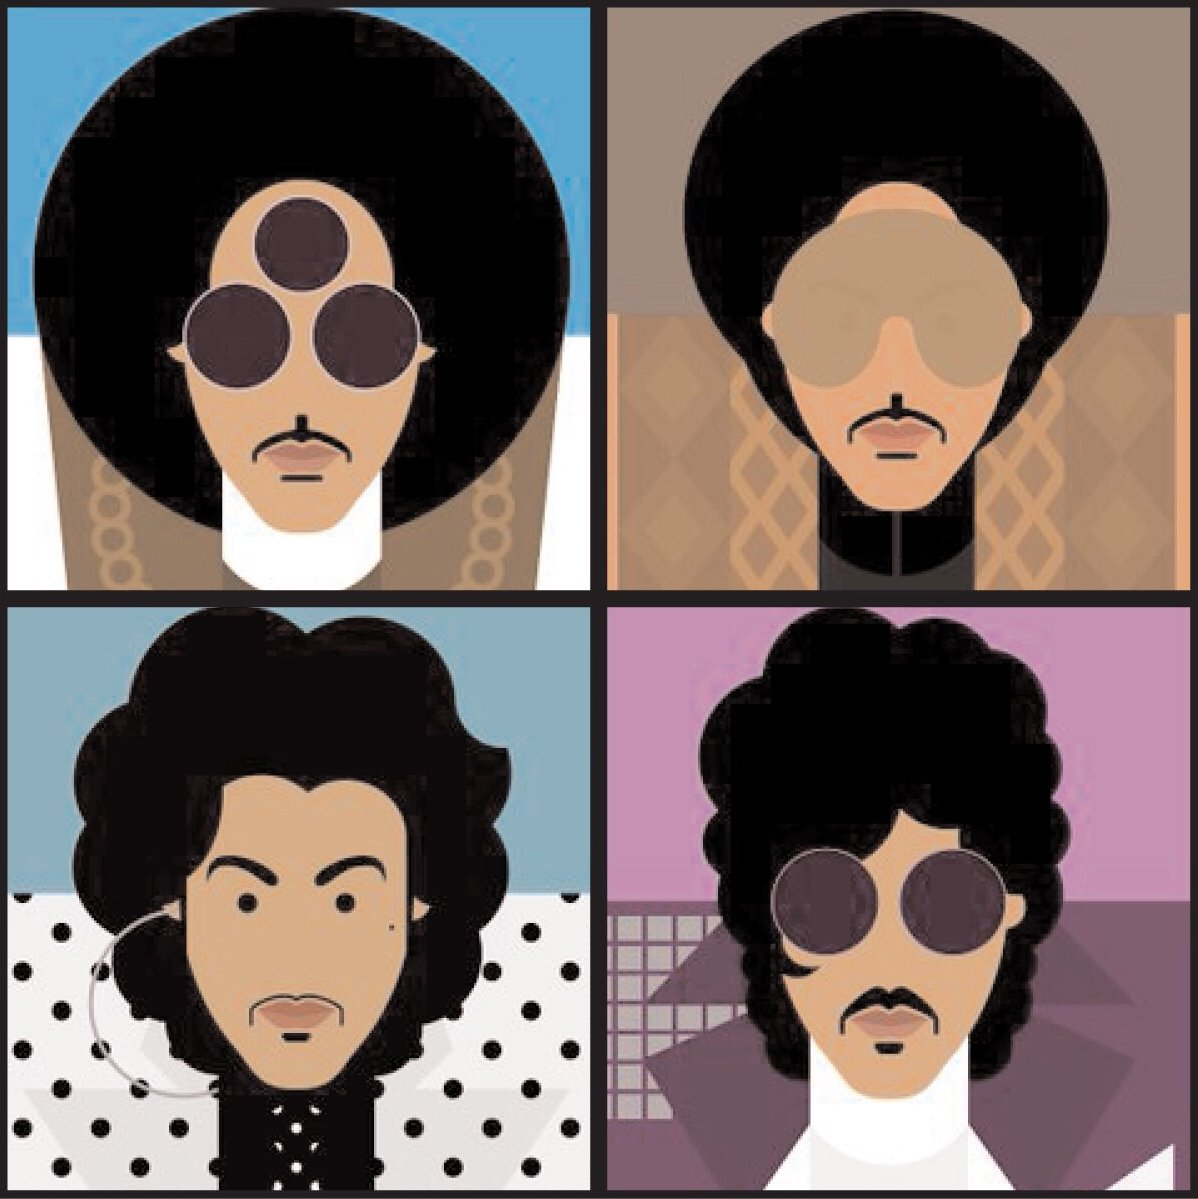 Happy 58th birthday Prince! We miss seeing your face around here, but we still celebrate you every day. https://t.co/qTLgzpCKbp